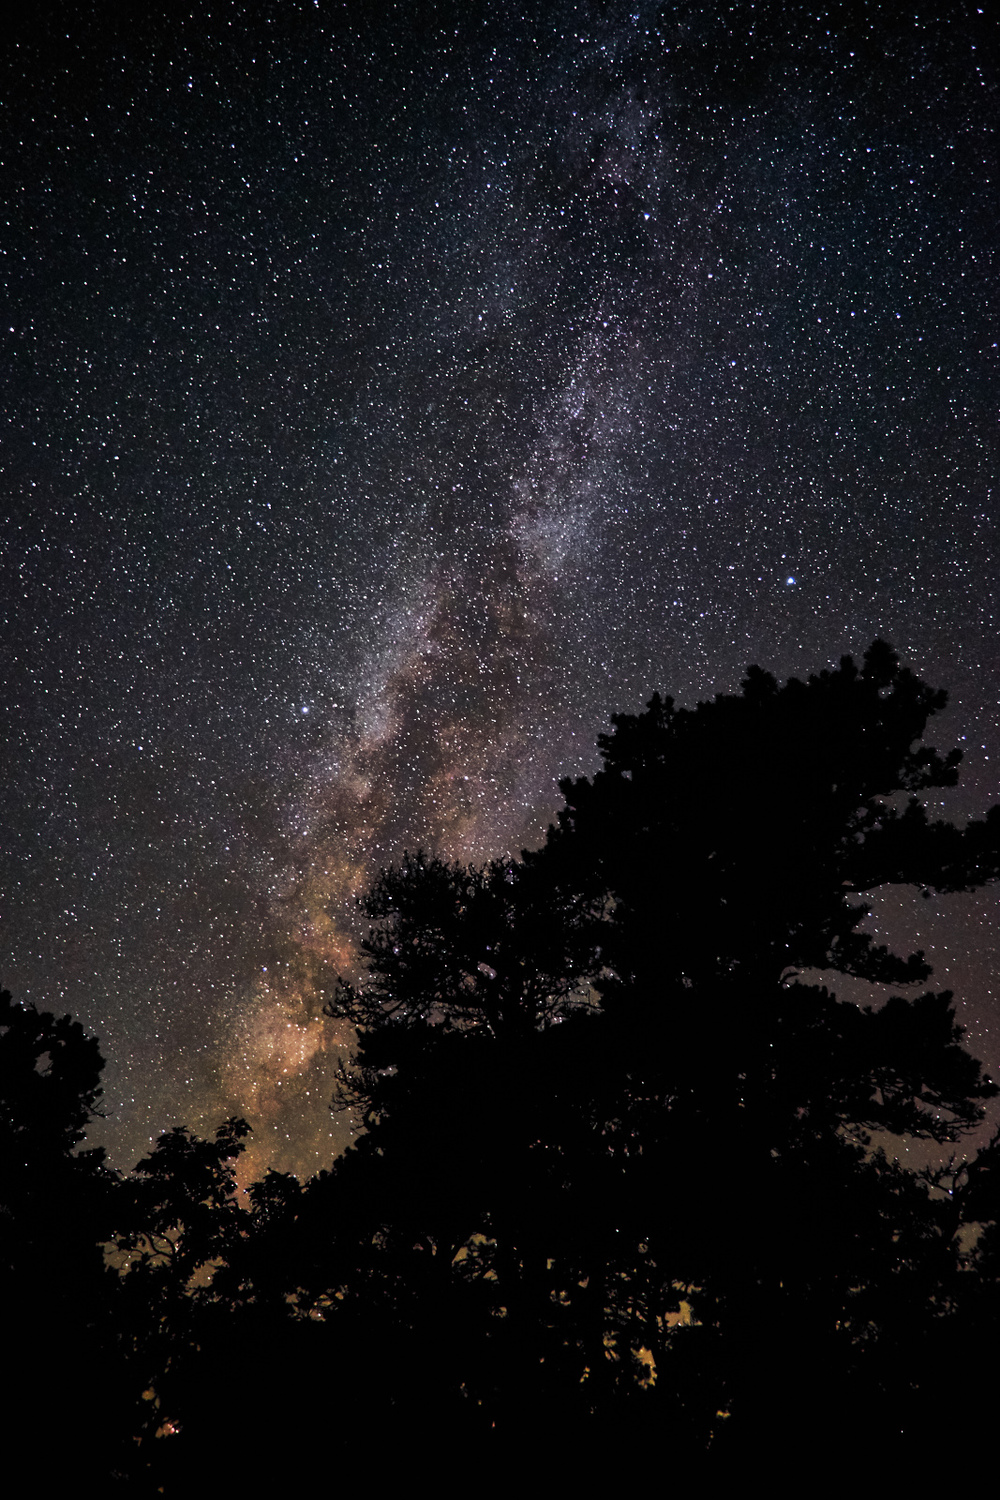 Milky Way Silhouette